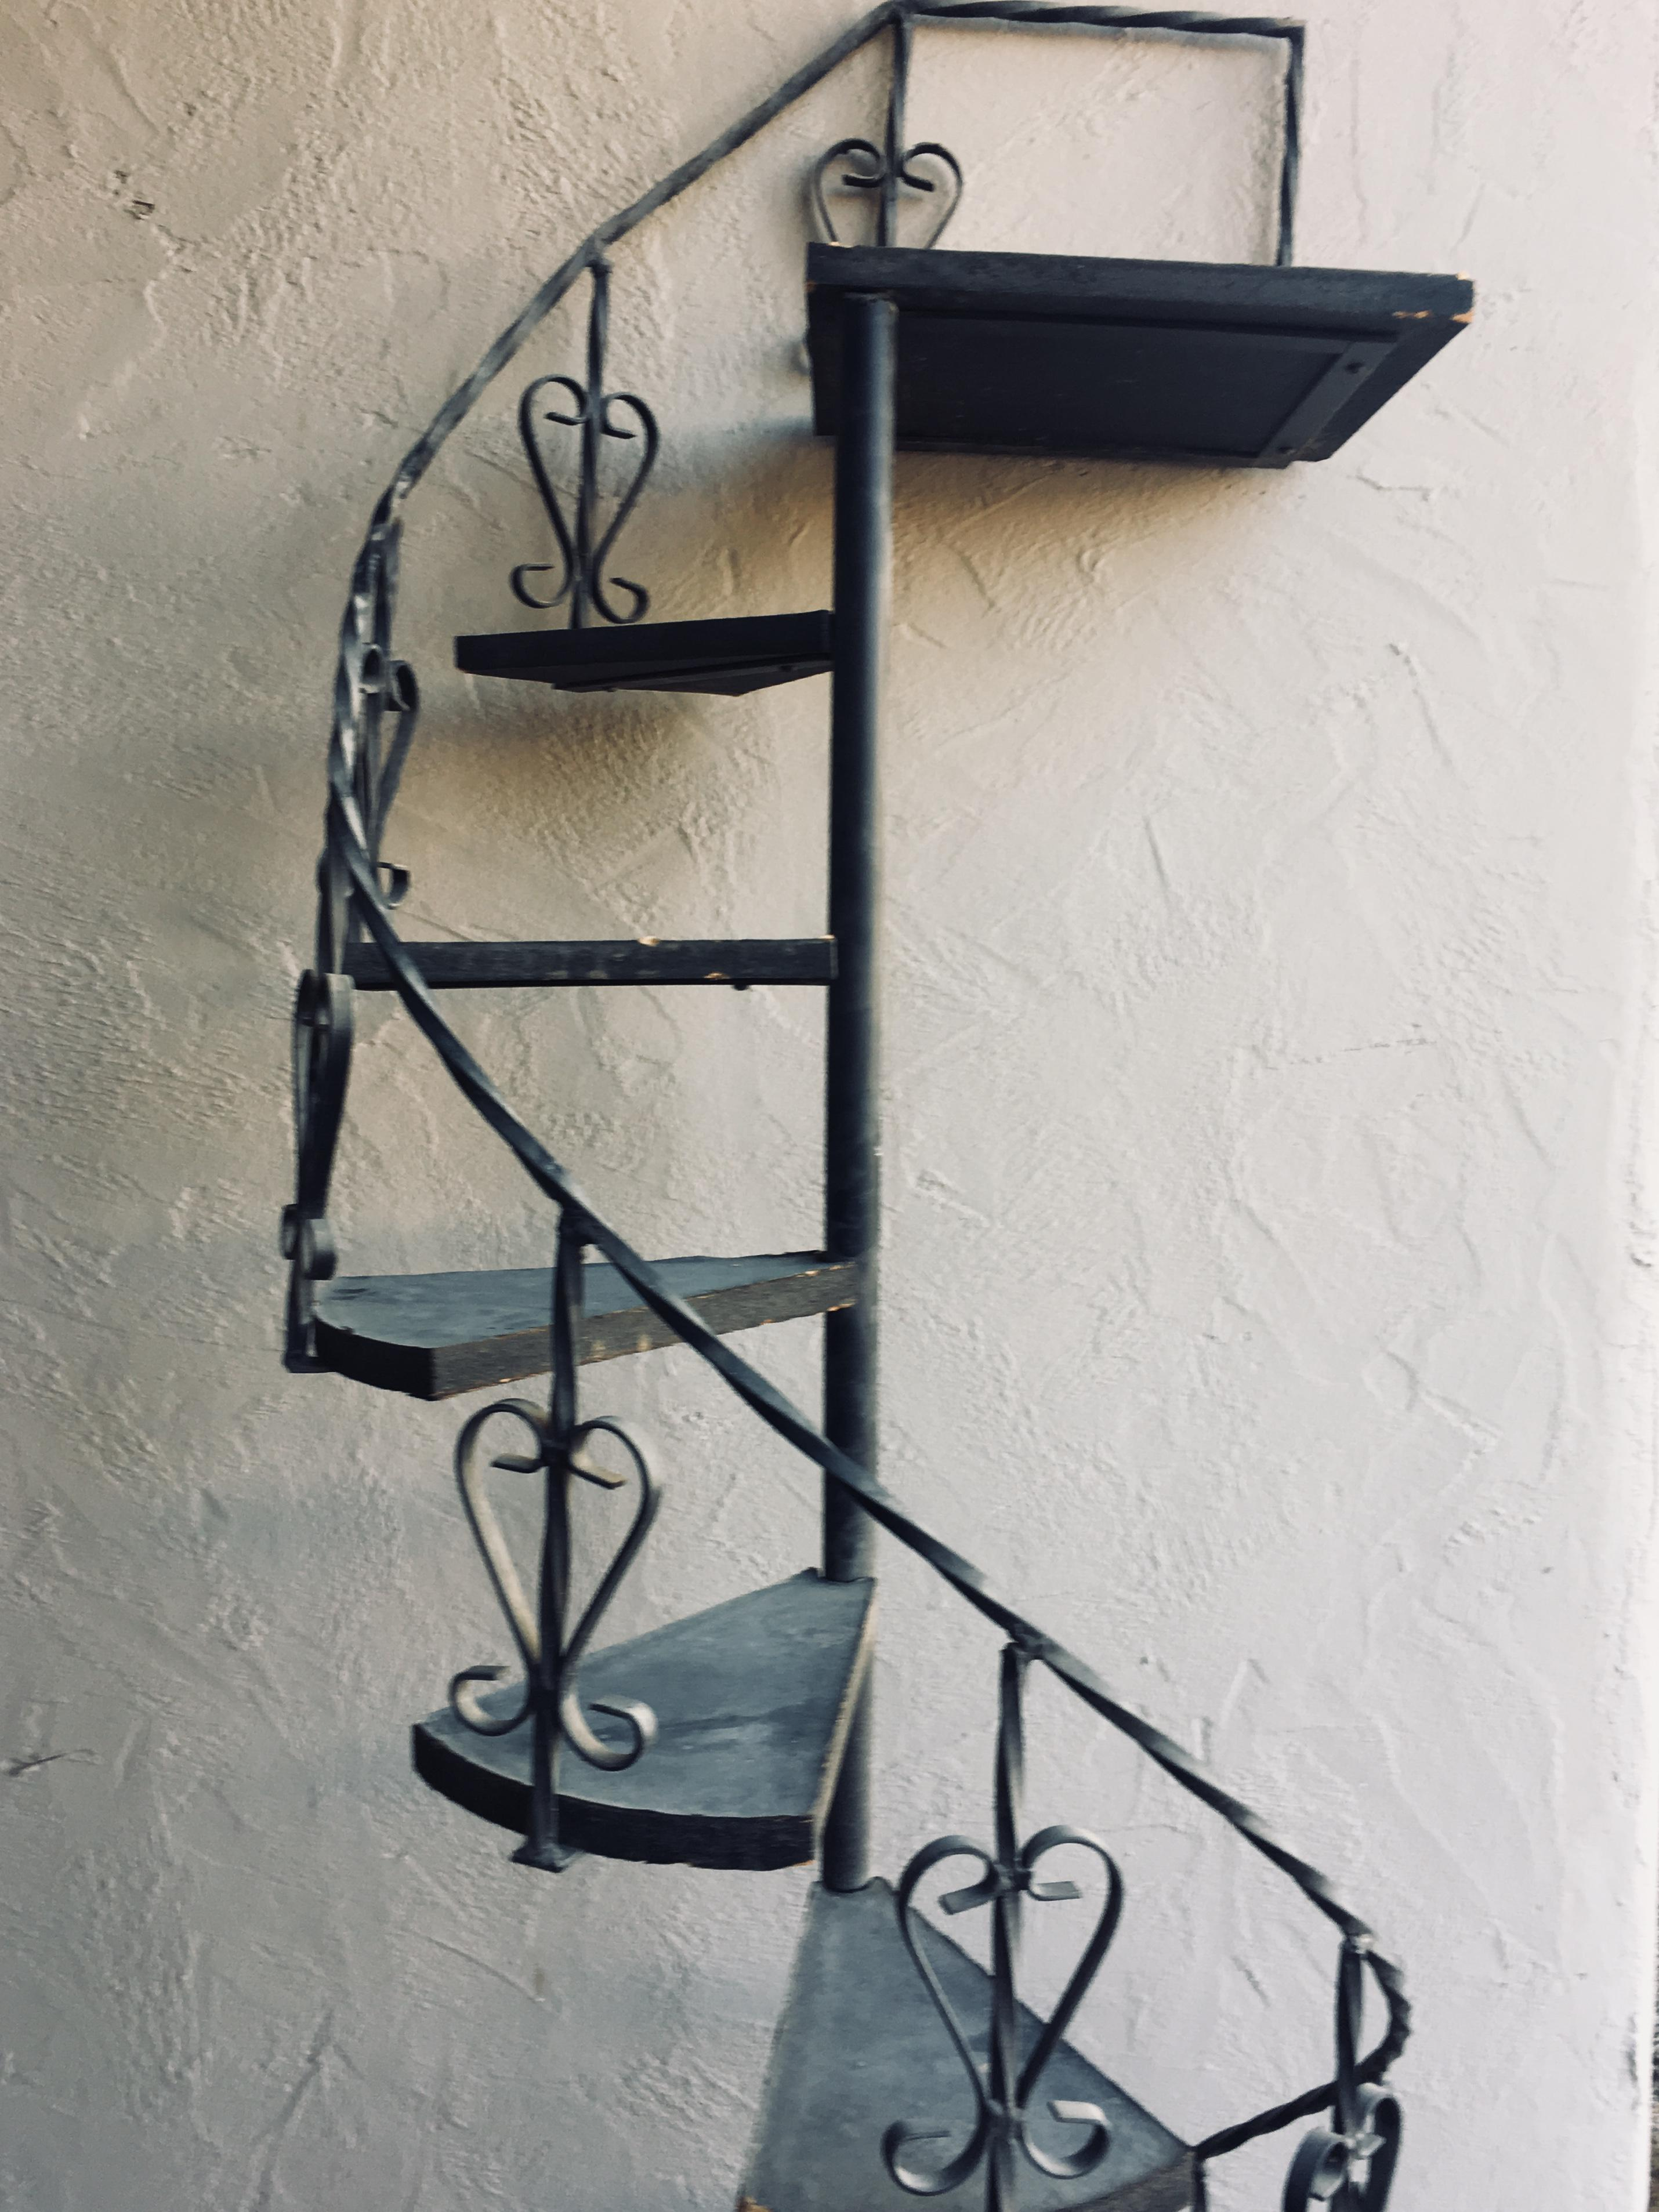 Mid 20th Century Vintage Wrought Iron Spiral Staircase Plant Stand Garden  Art For Sale   Image